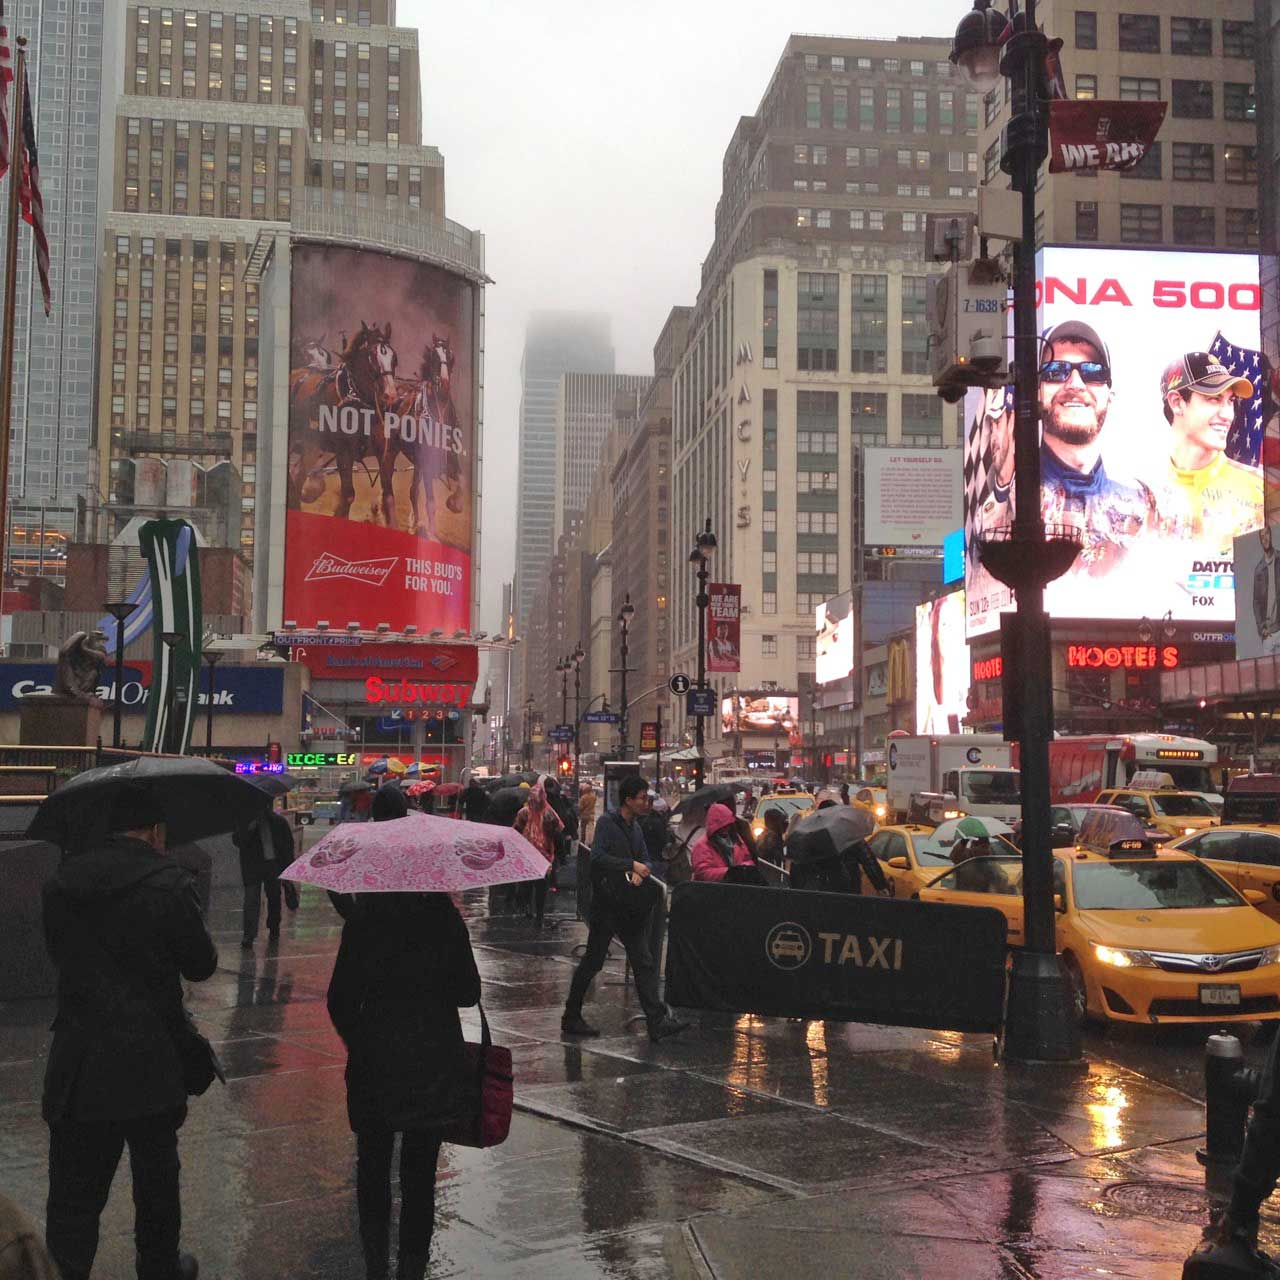 New York, now warm and wet